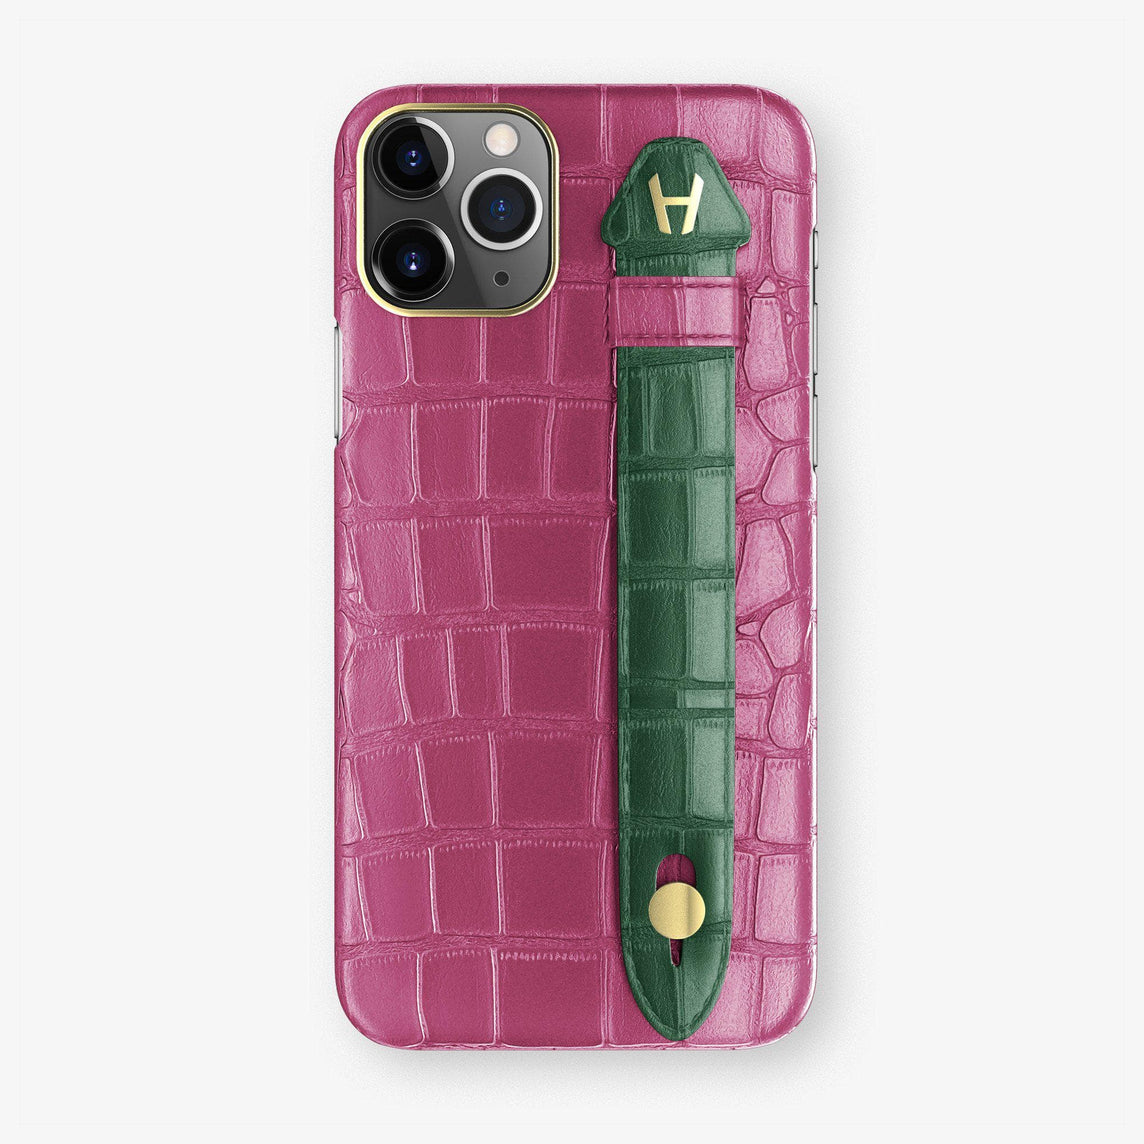 Alligator Finger Case iPhone 11 Pro | Pink Fuchsia/Green - Yellow Gold